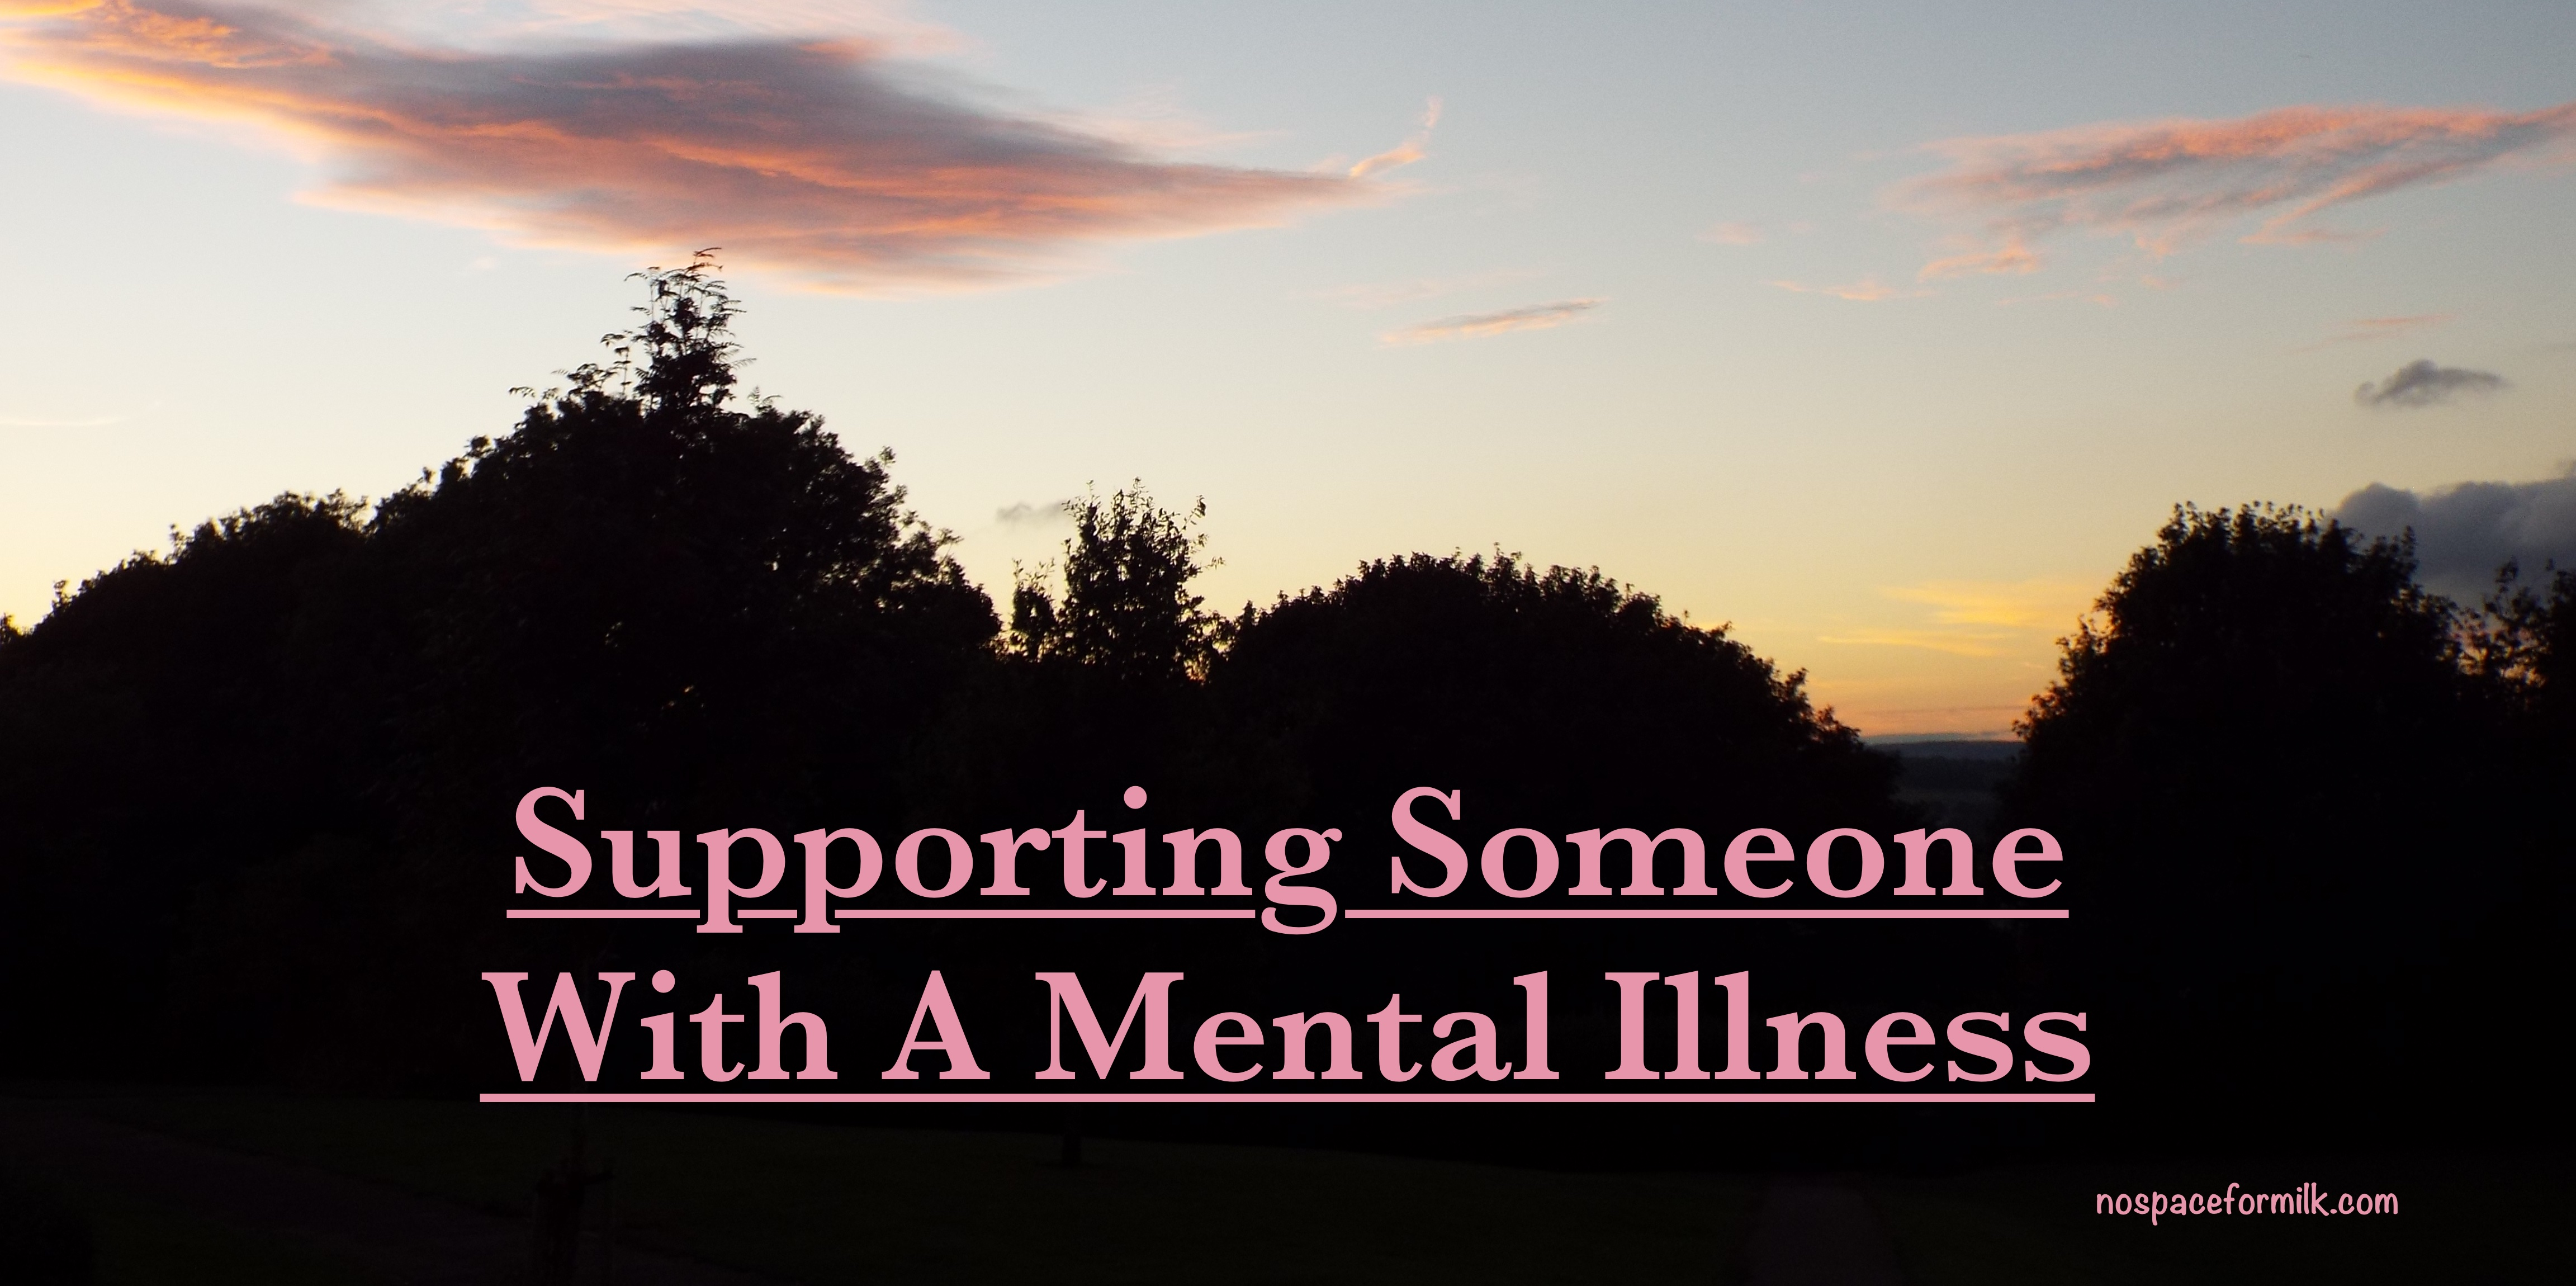 Supporting Someone with a Mental Illness